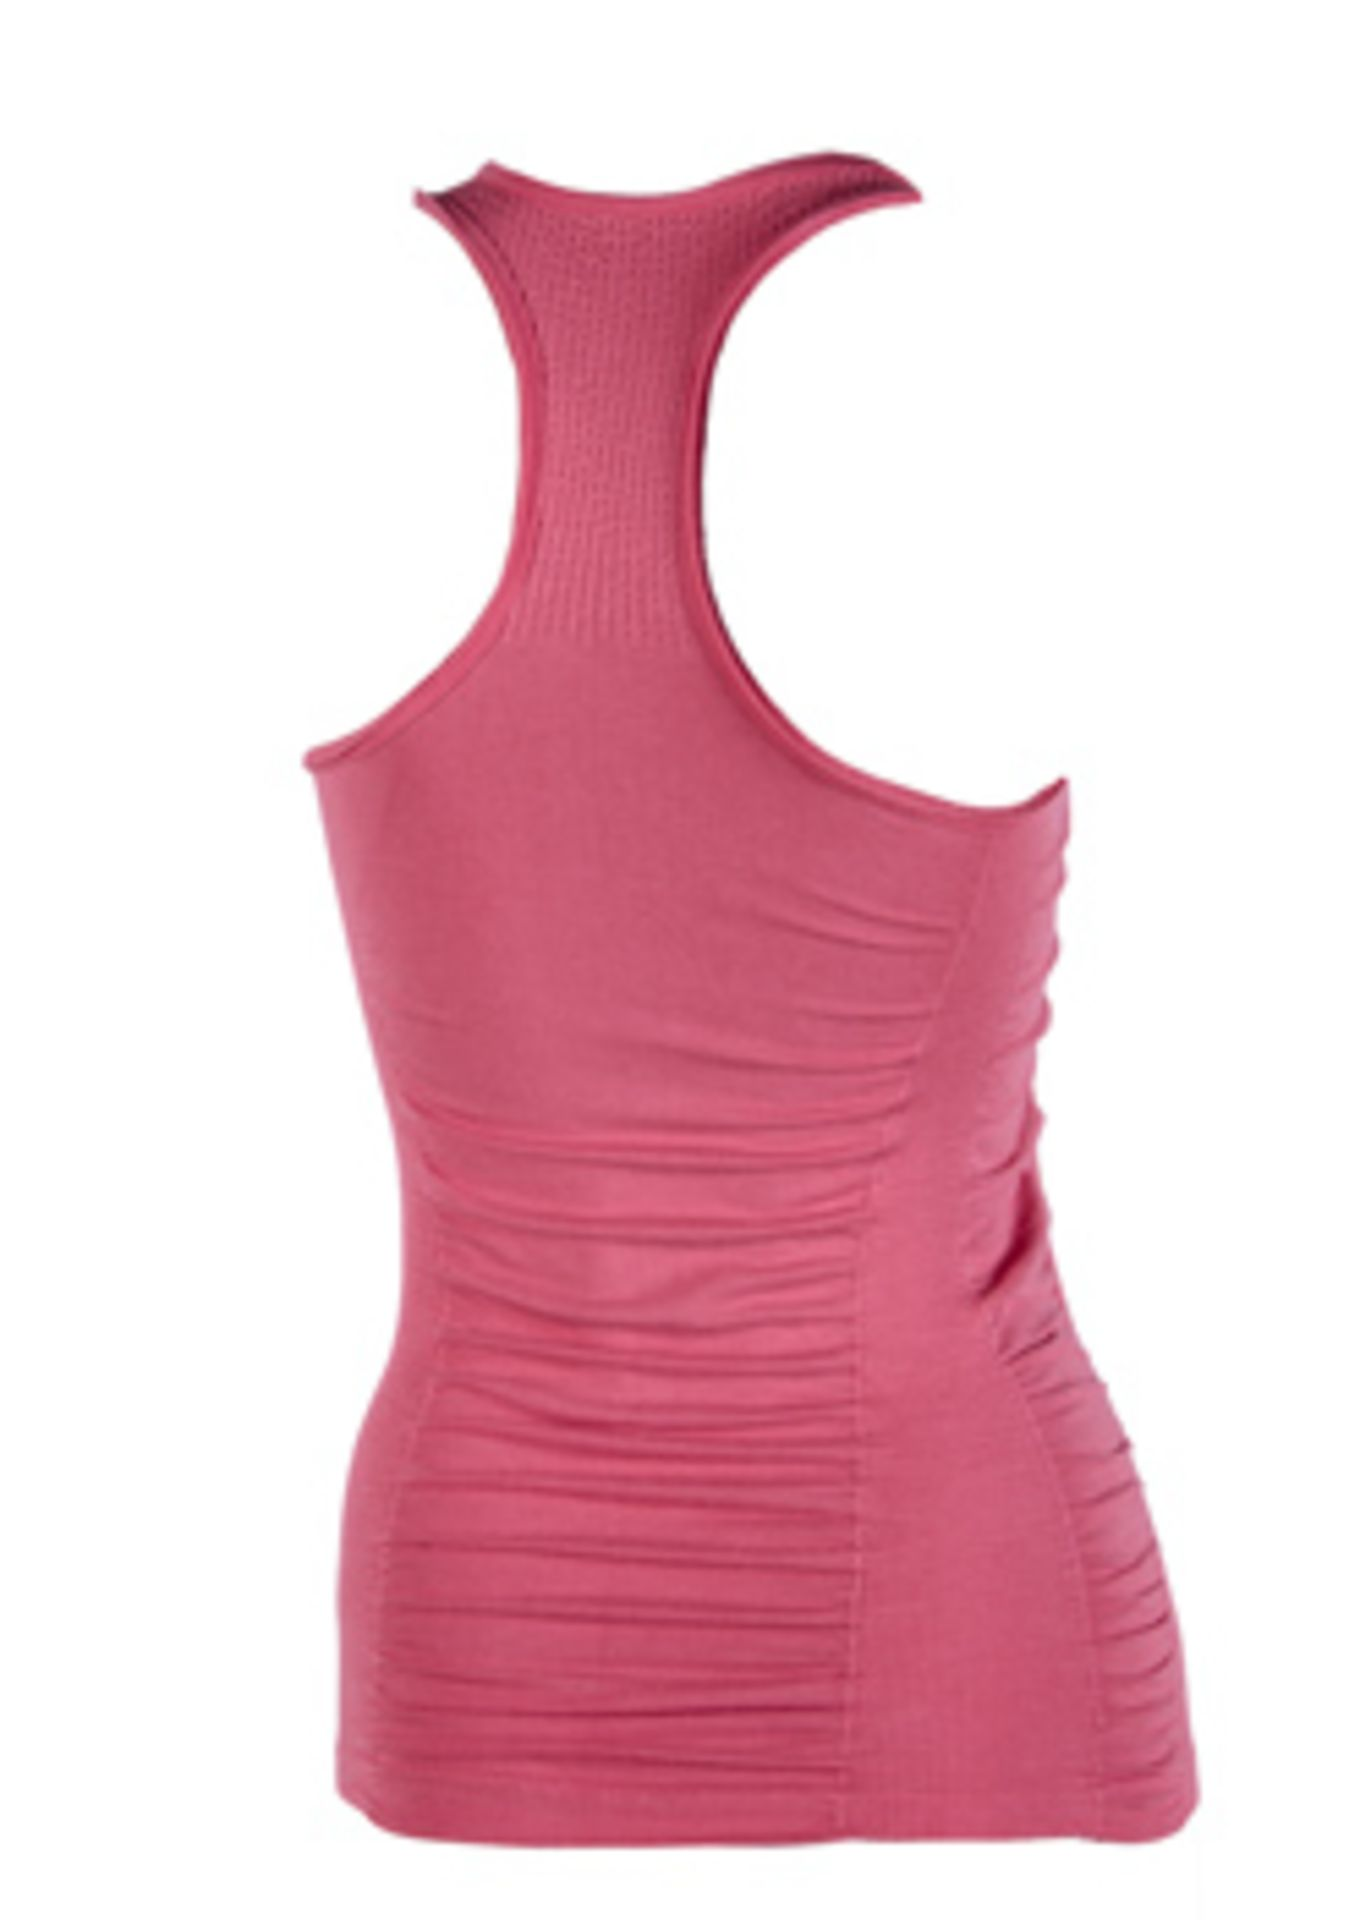 2 x Bamboo Seamless Soft Tanks   L & M   2 Colours - Image 2 of 2